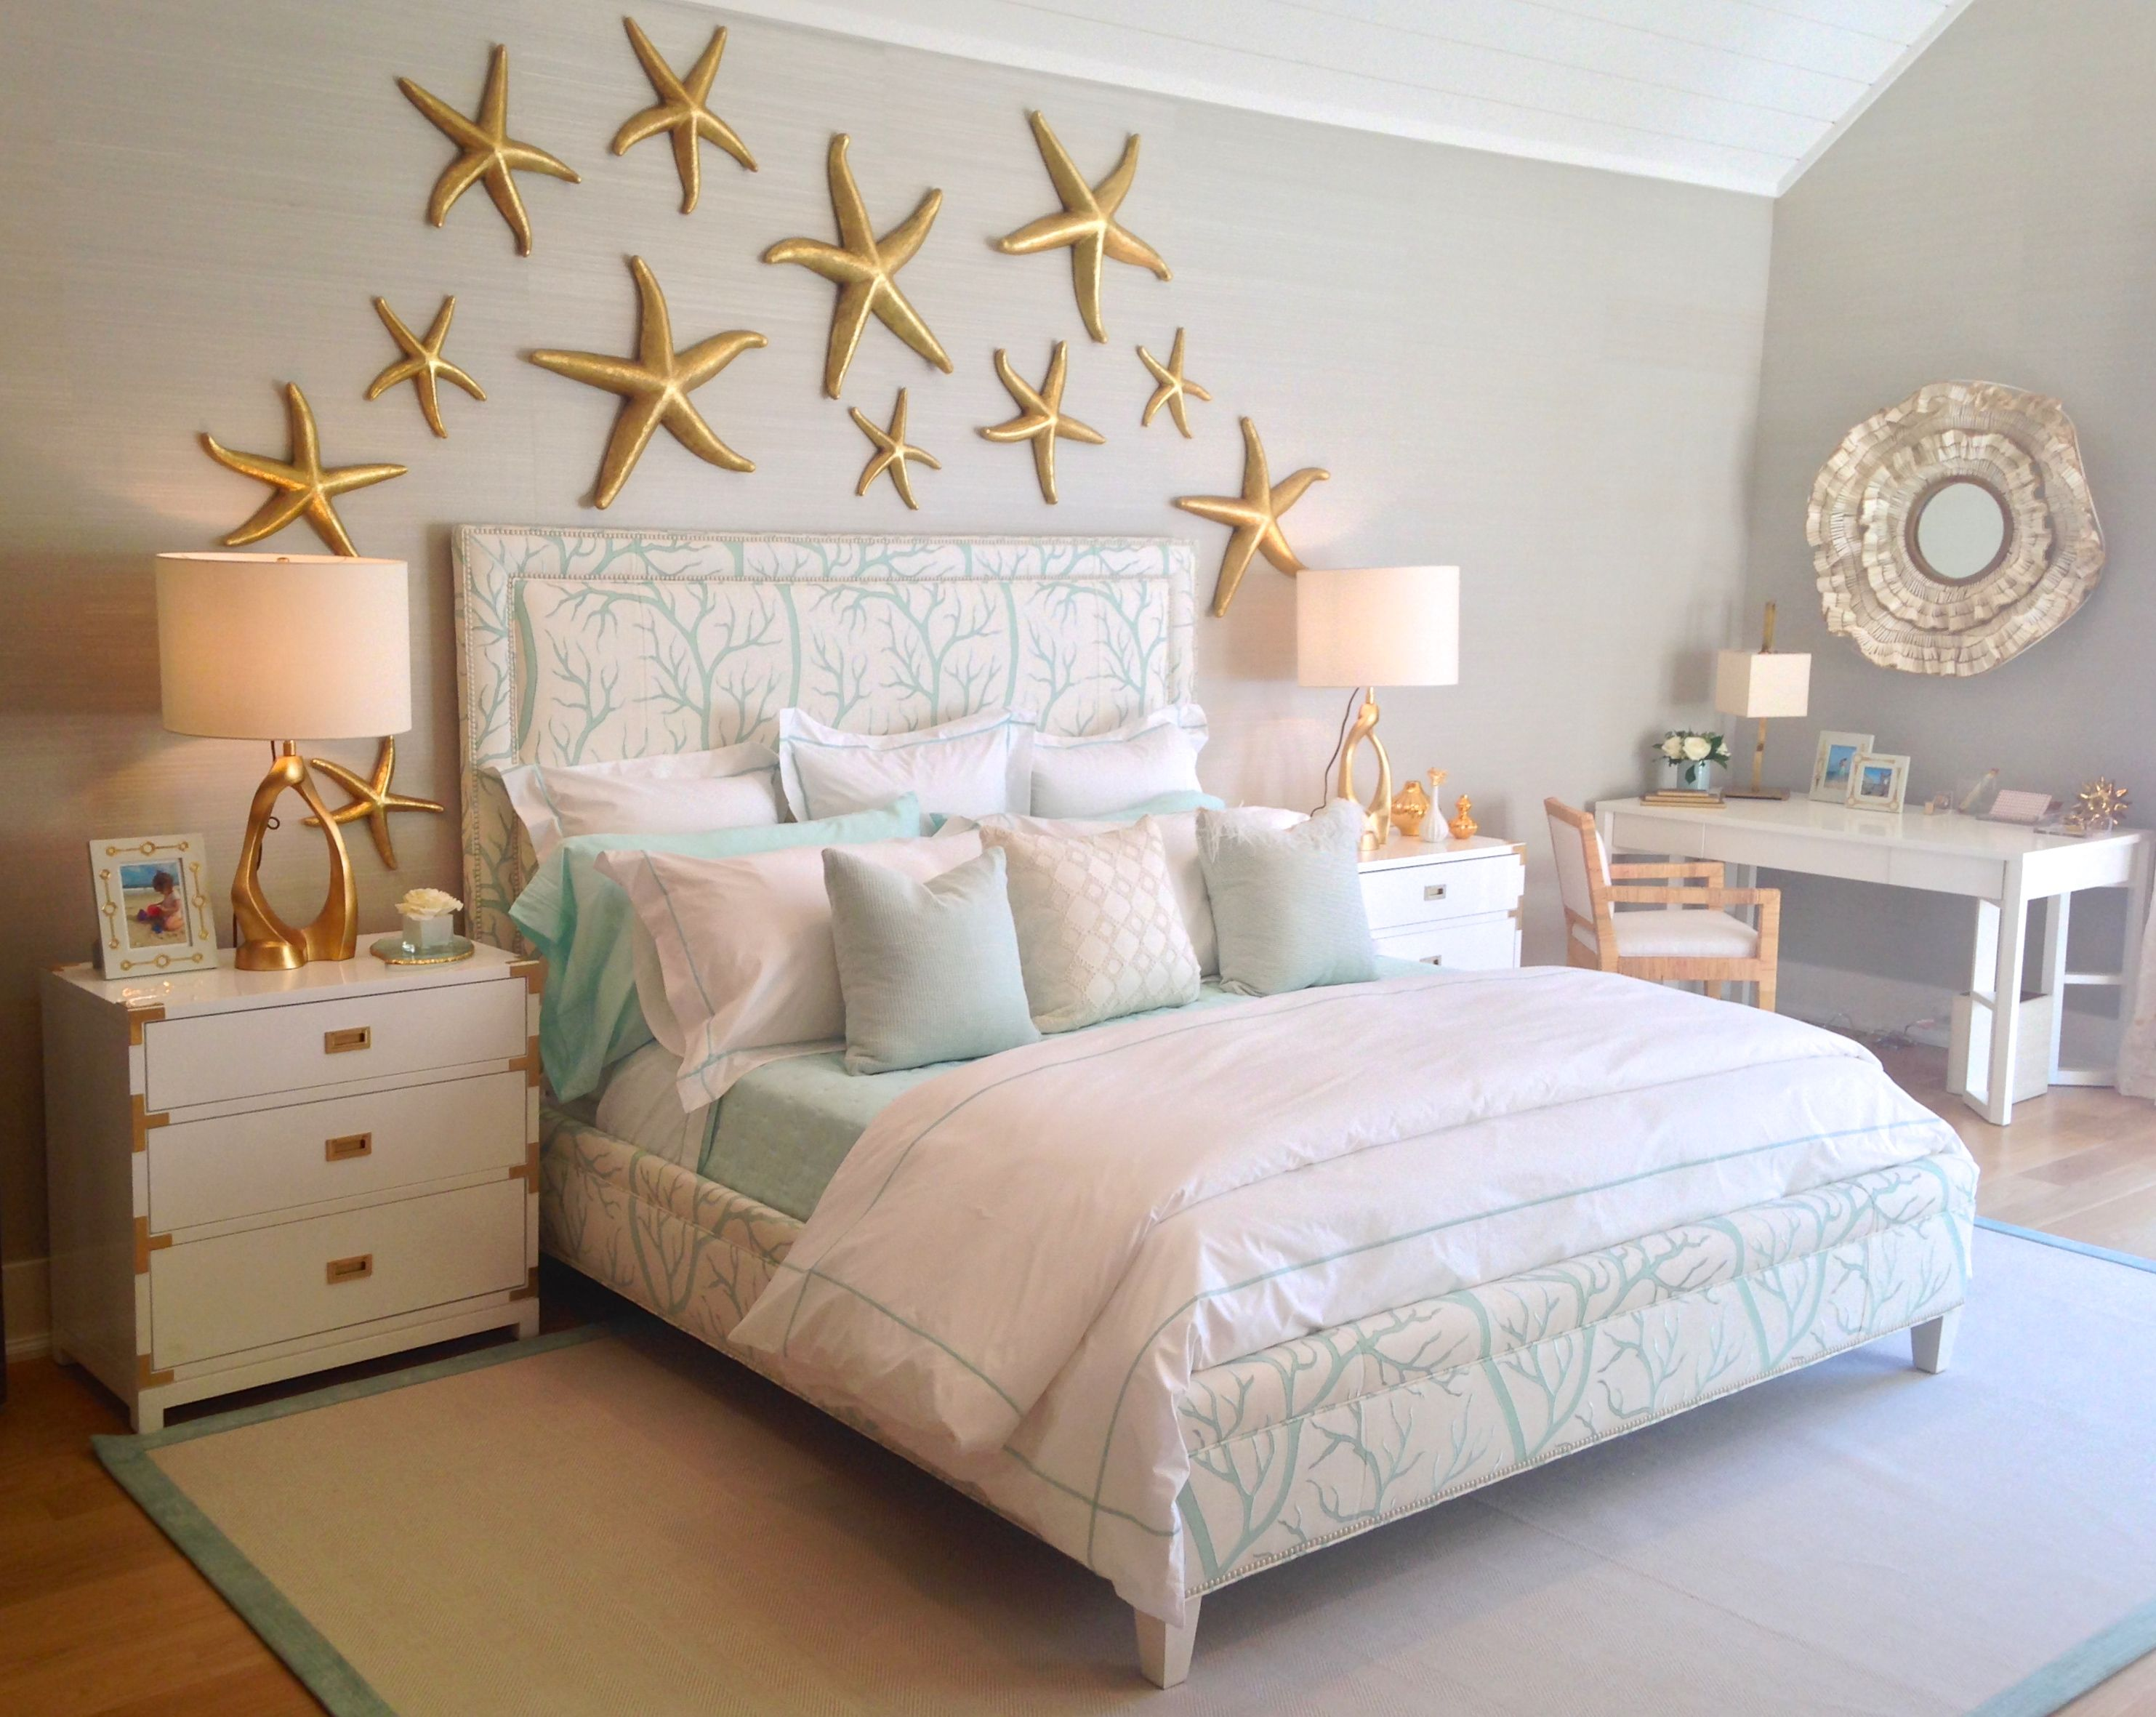 best 25+ beach theme bedrooms ideas only on pinterest | beach